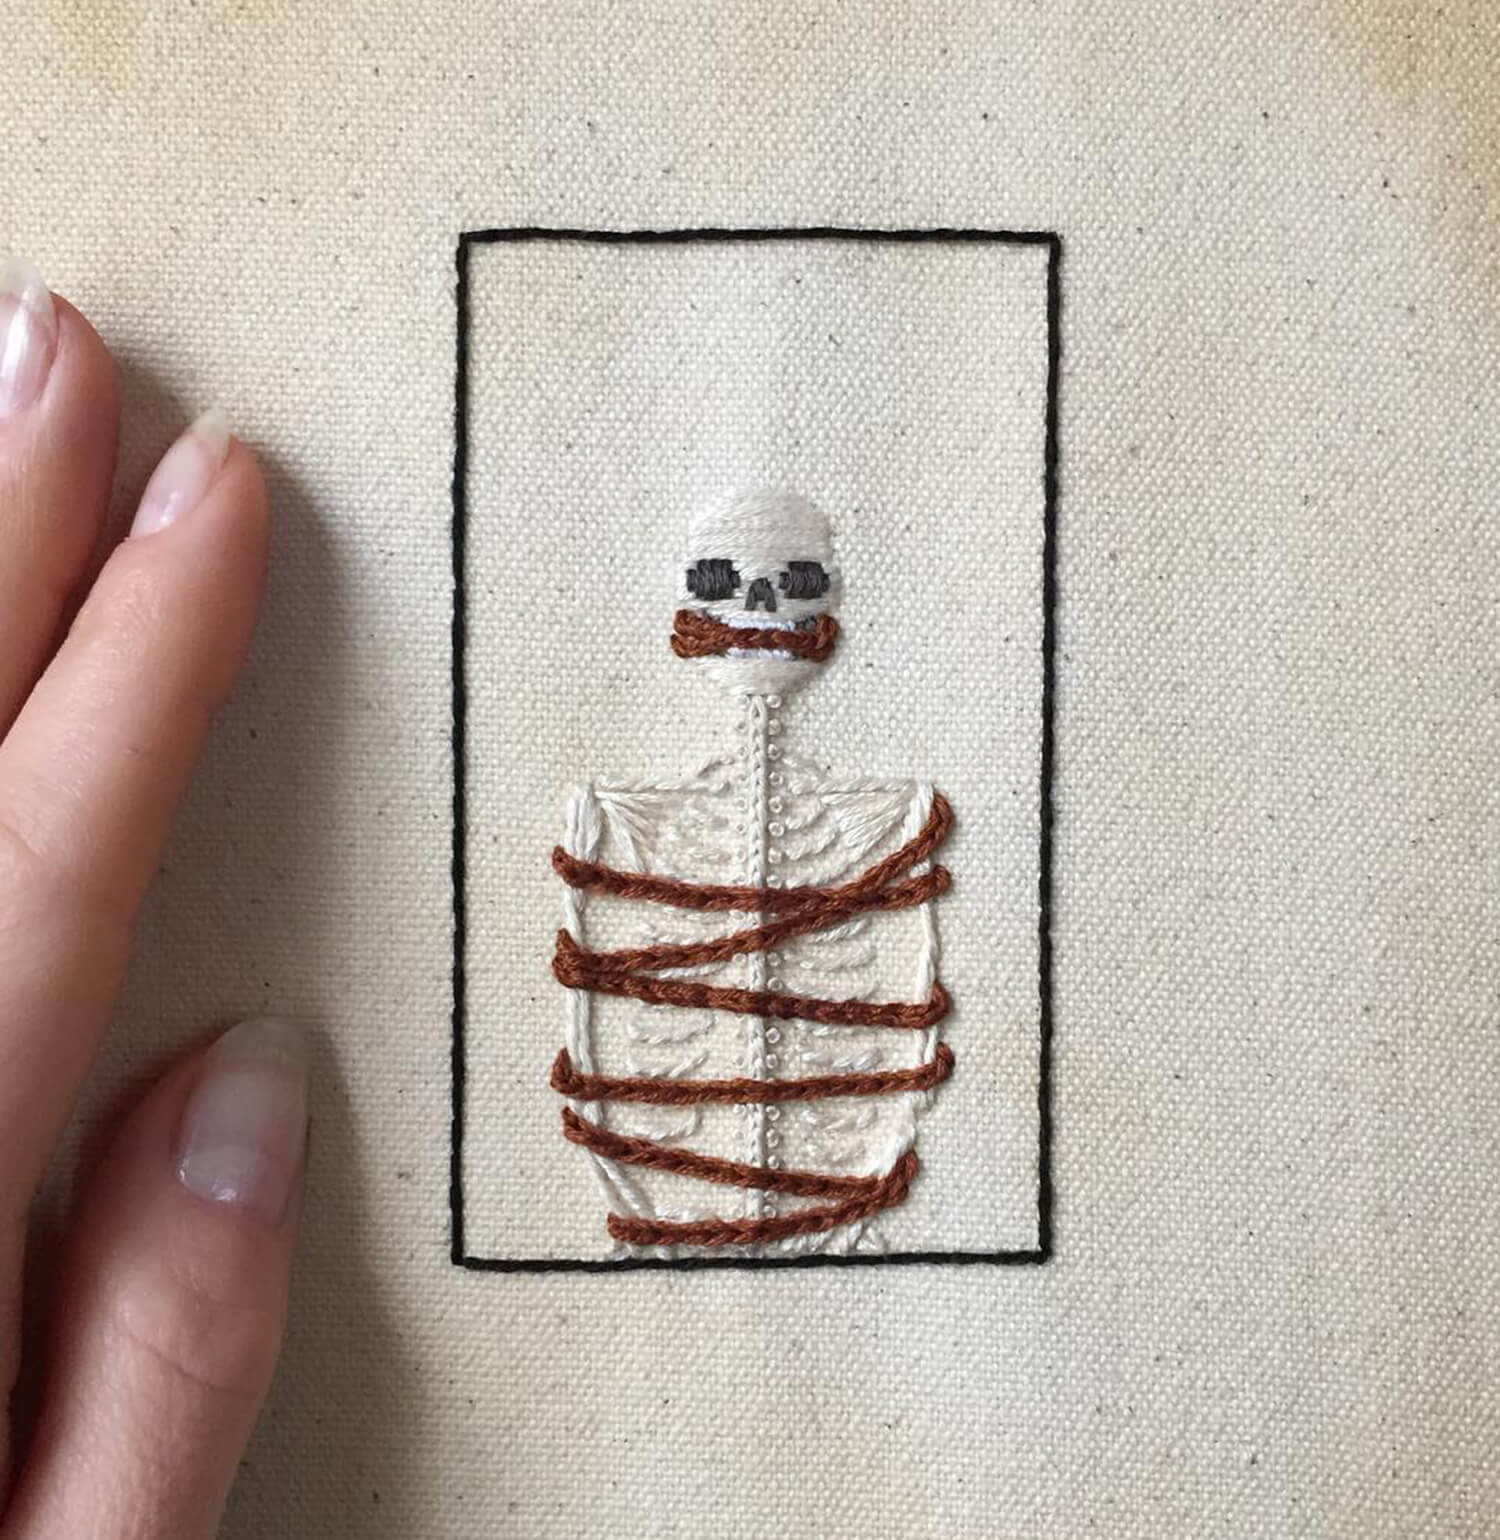 embroidery of skeleton tied up